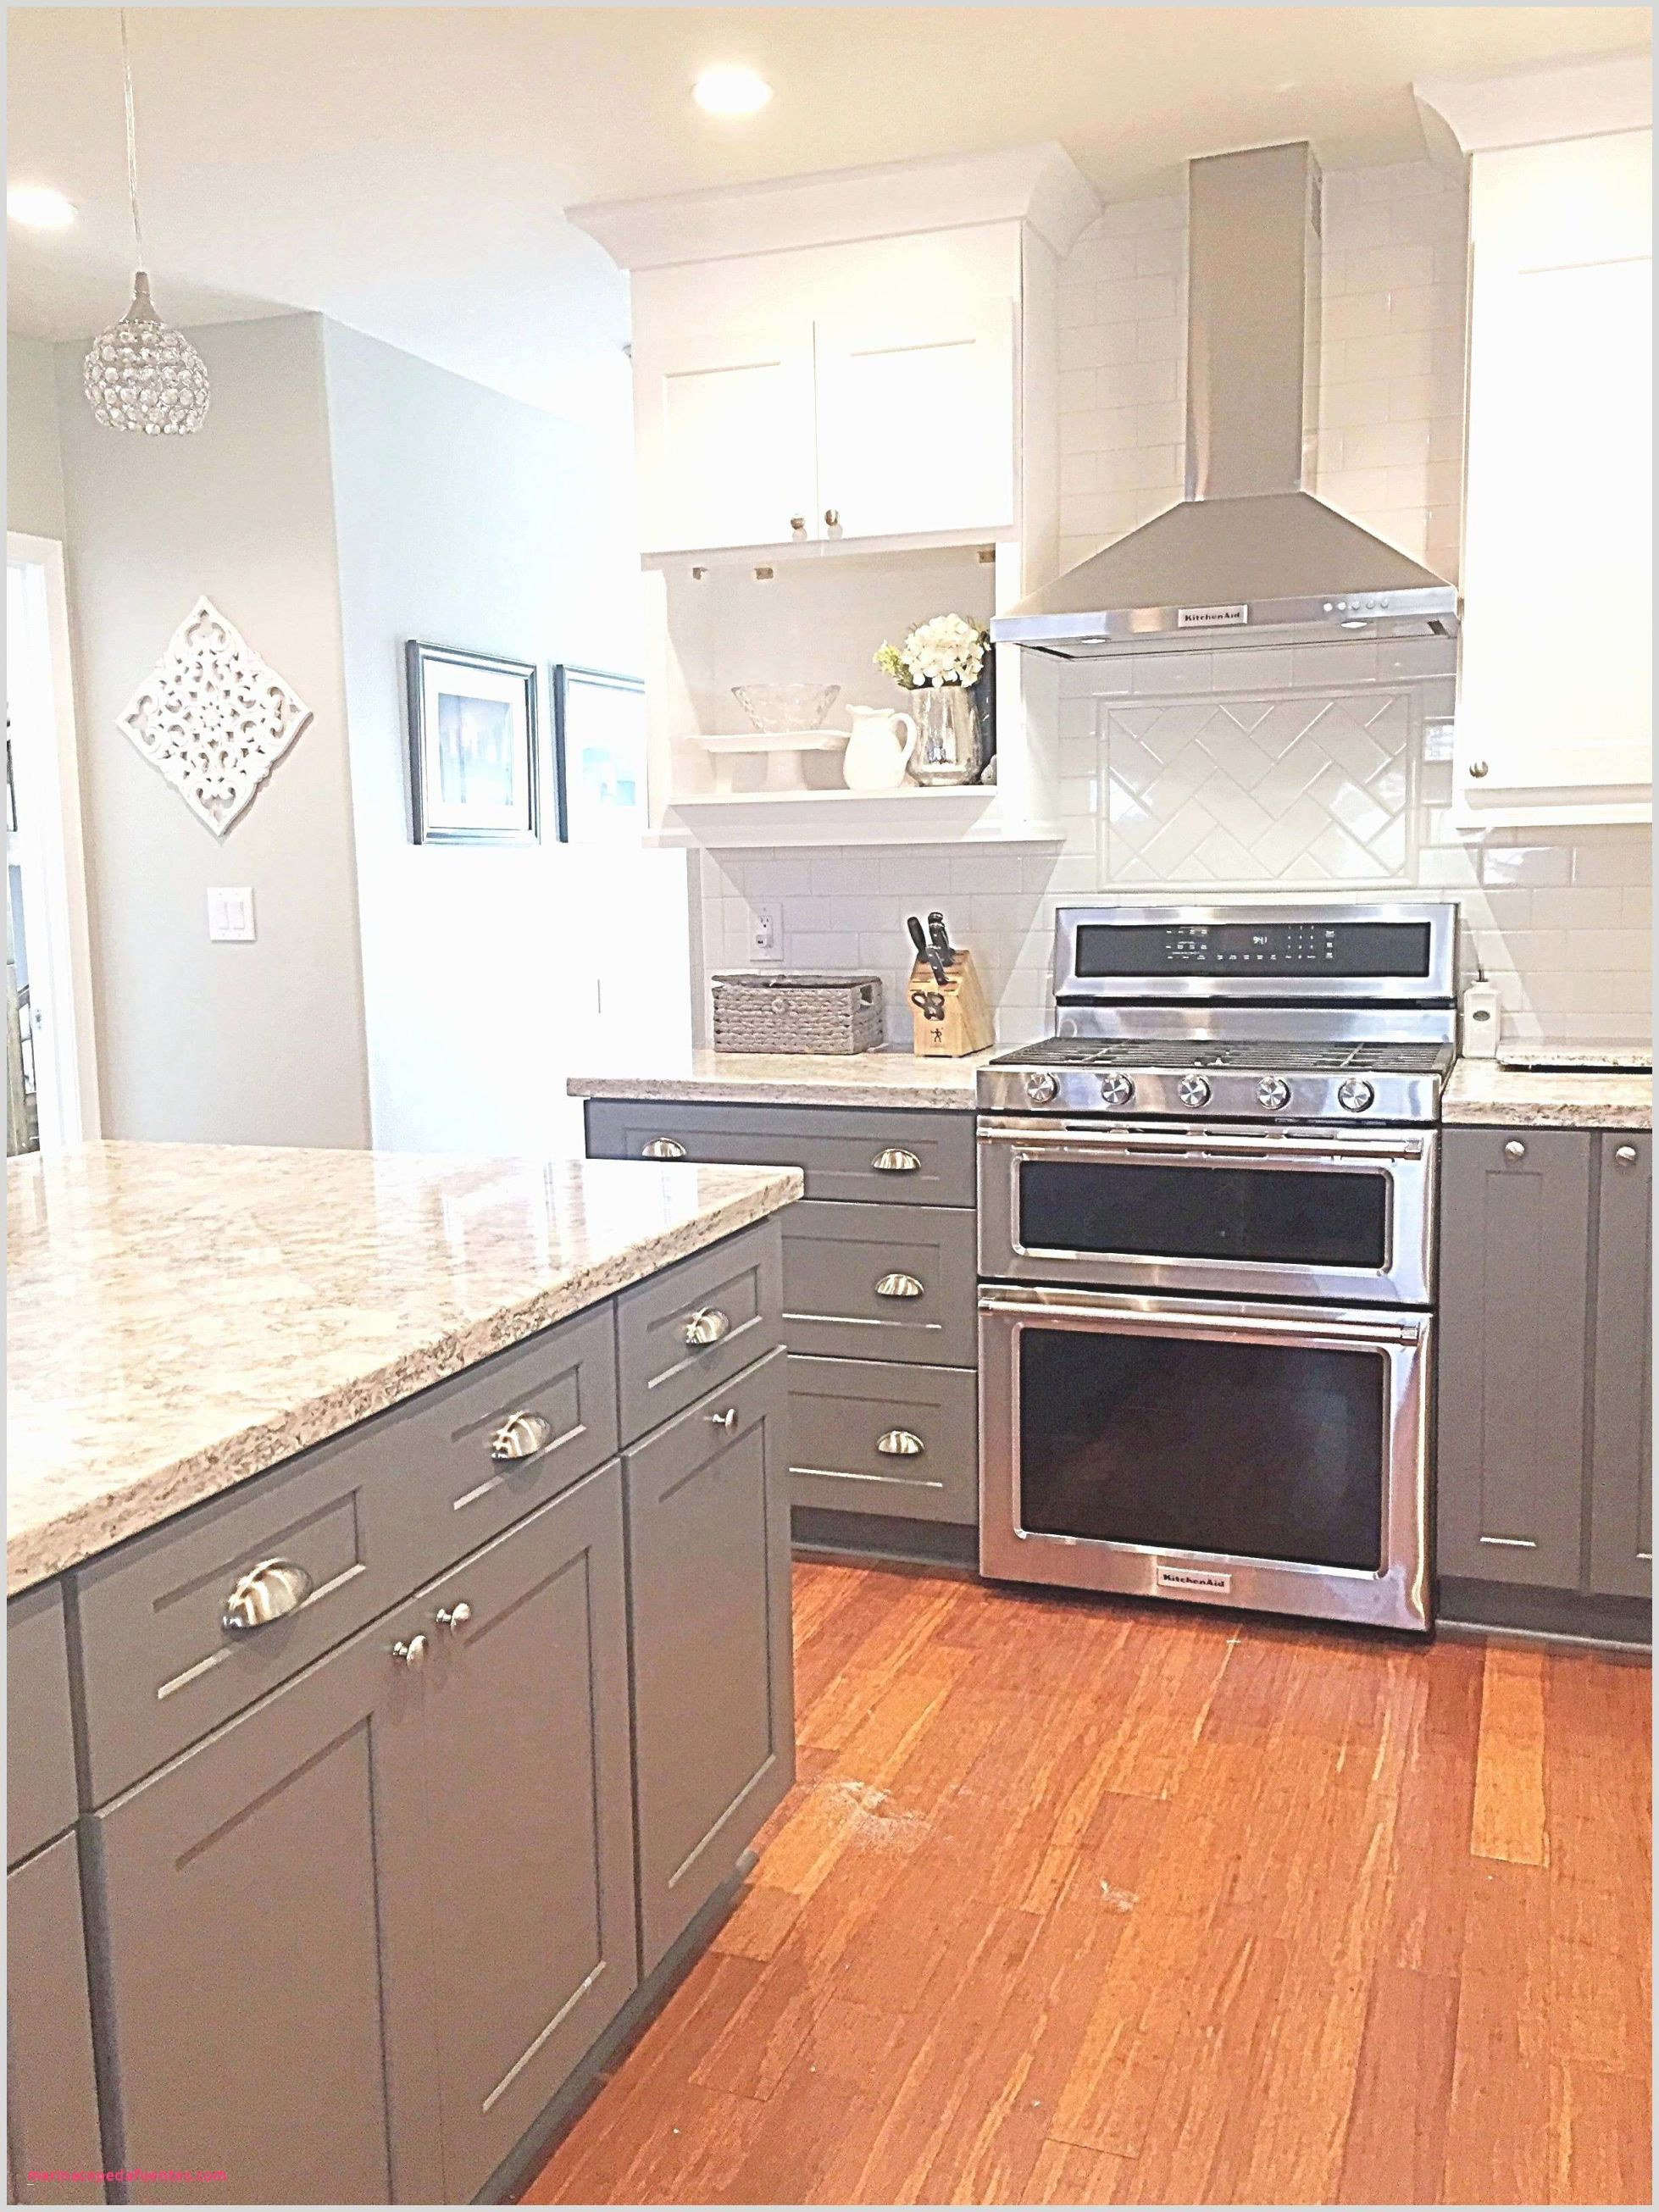 Lovely Used Kitchen Cabinets For Sale - Awesome Decors